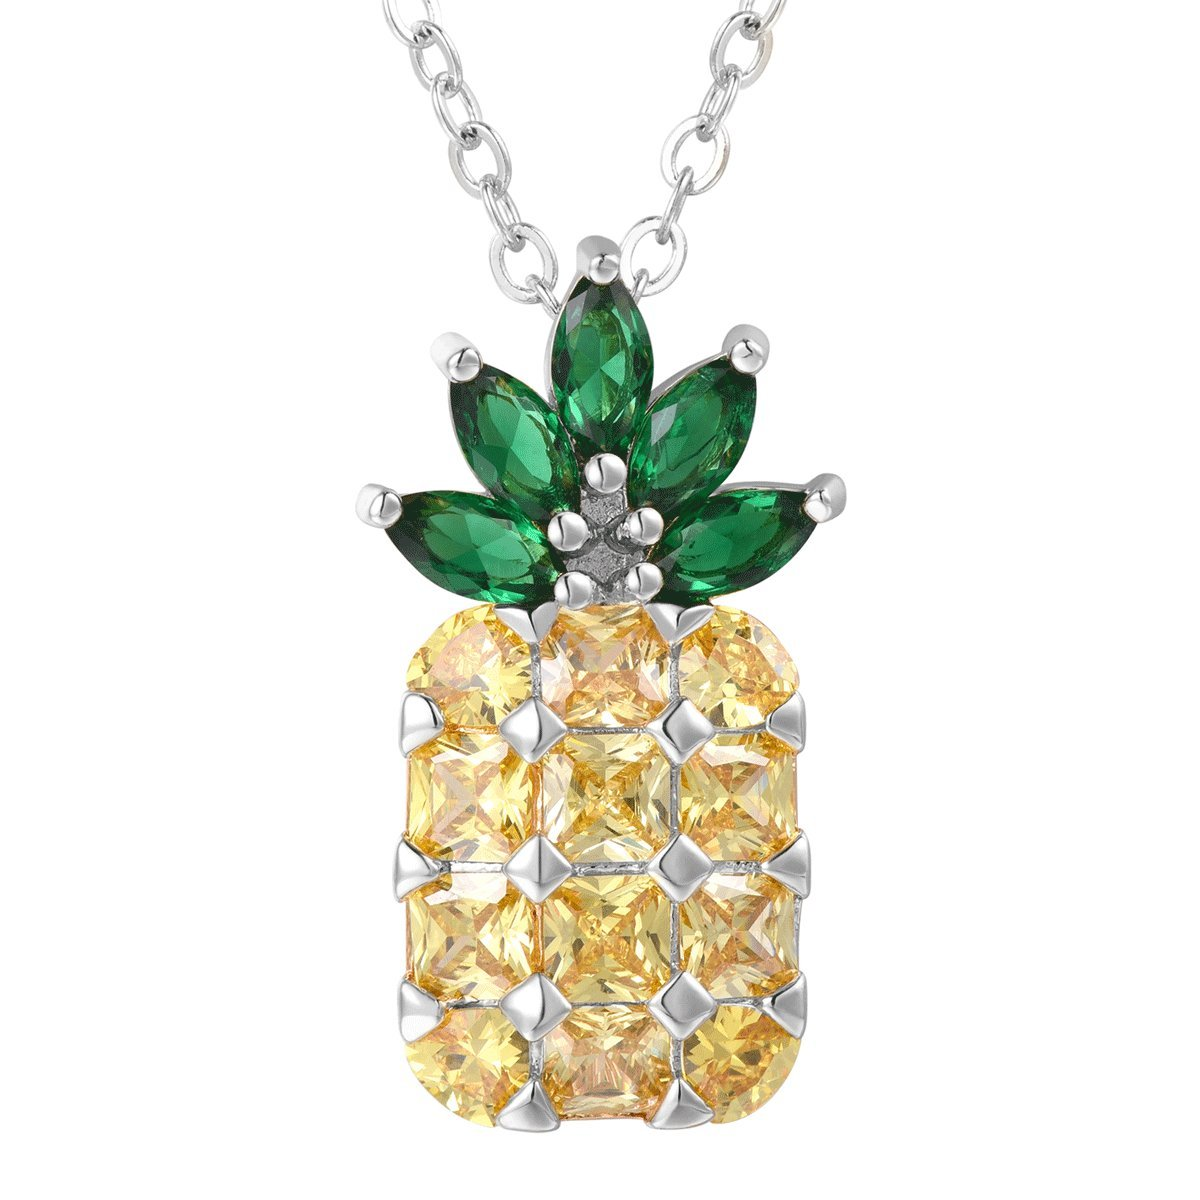 FOCALOOK Pineapple Necklace Gold Plated Brooch Cubic Zirconia Fruit Pendant Jewelry for Women FOCALOOK JEWELRY FB9012W-USA